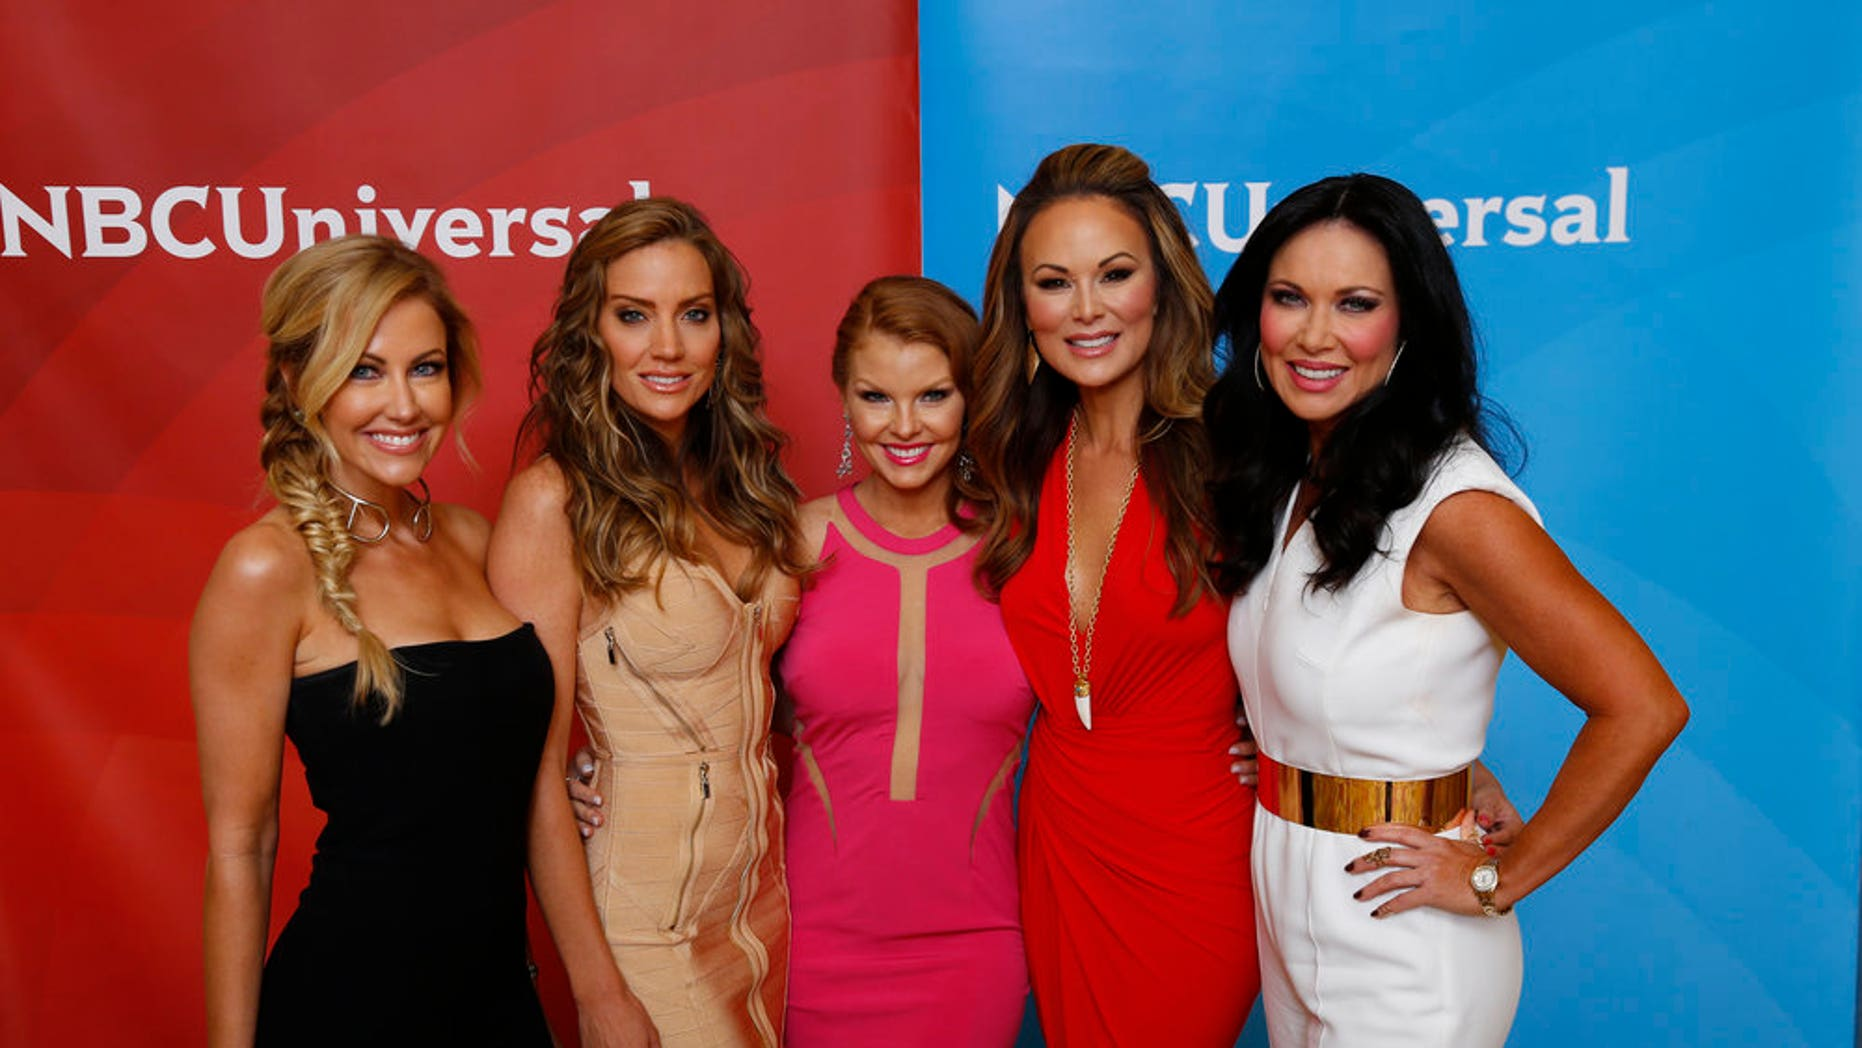 """NBCUNIVERSAL EVENTS -- NBCUniversal Summer Press Day, April 1, 2016 -- Bravo's """"The Real Housewives of Dallas"""" -- Pictured: (l-r) Stephanie Hollman, Cary Deuber, Brandi Redmond, Tiffany Hendra, LeeAnne Locken -- (Photo by: Paul Drinkwater/NBCUniversal)"""